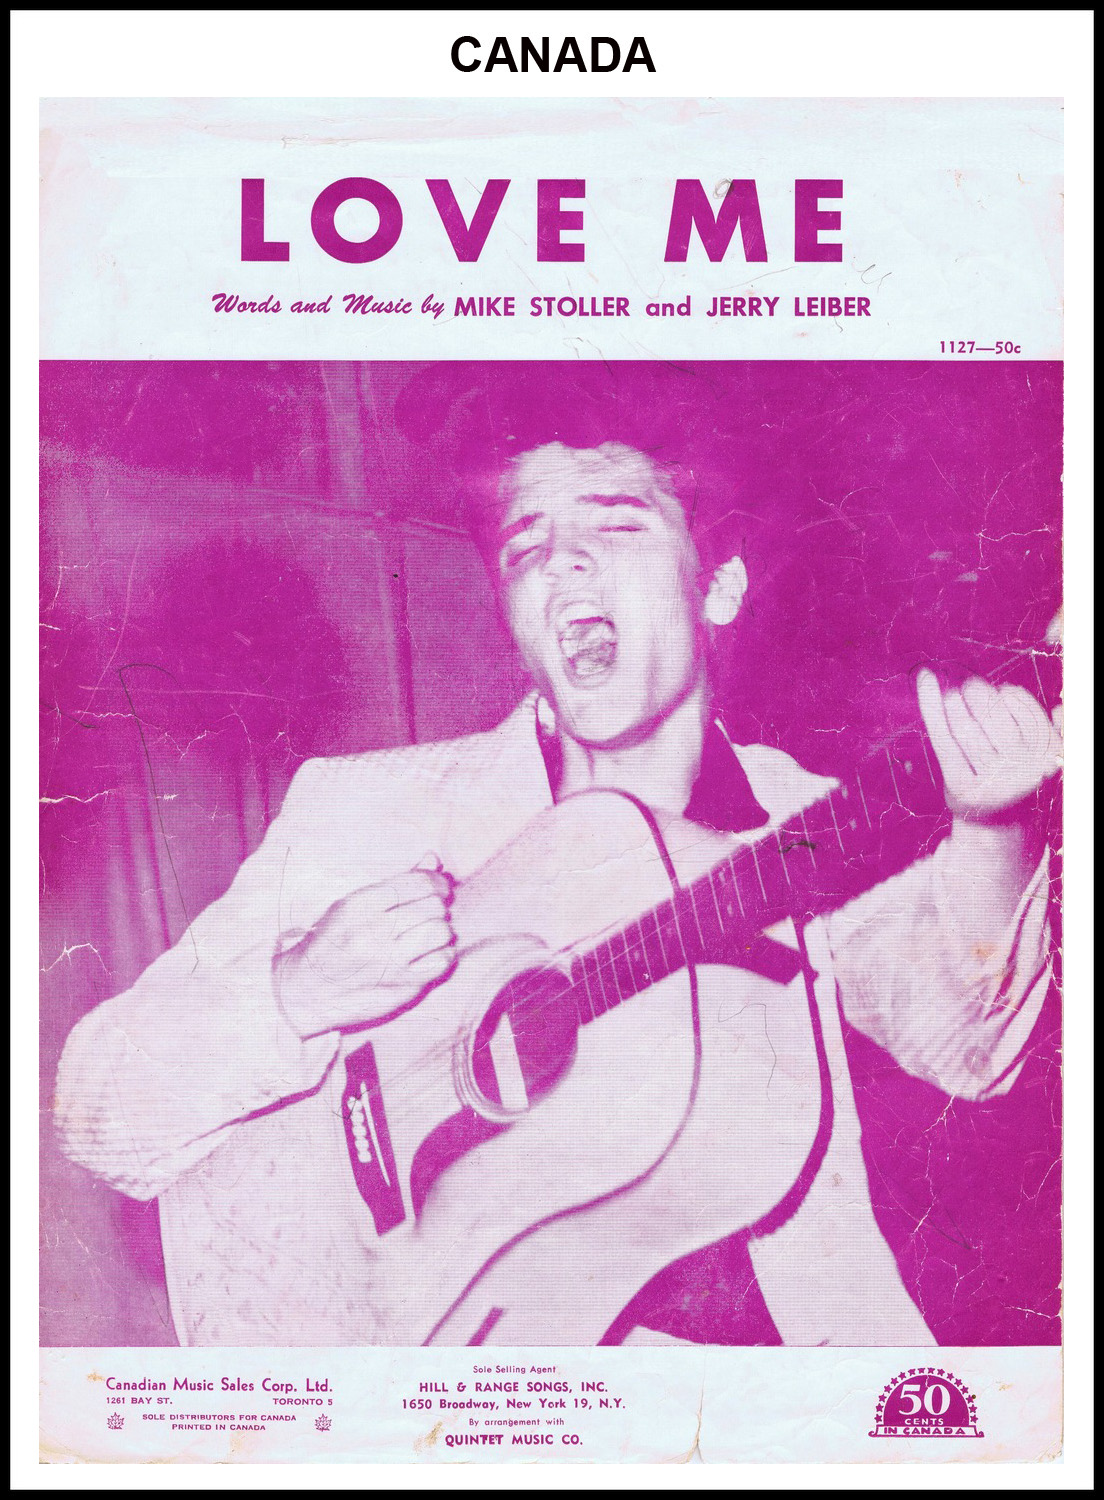 1956 - Love Me (Canada) (CHRIS GILES COLLECTION)